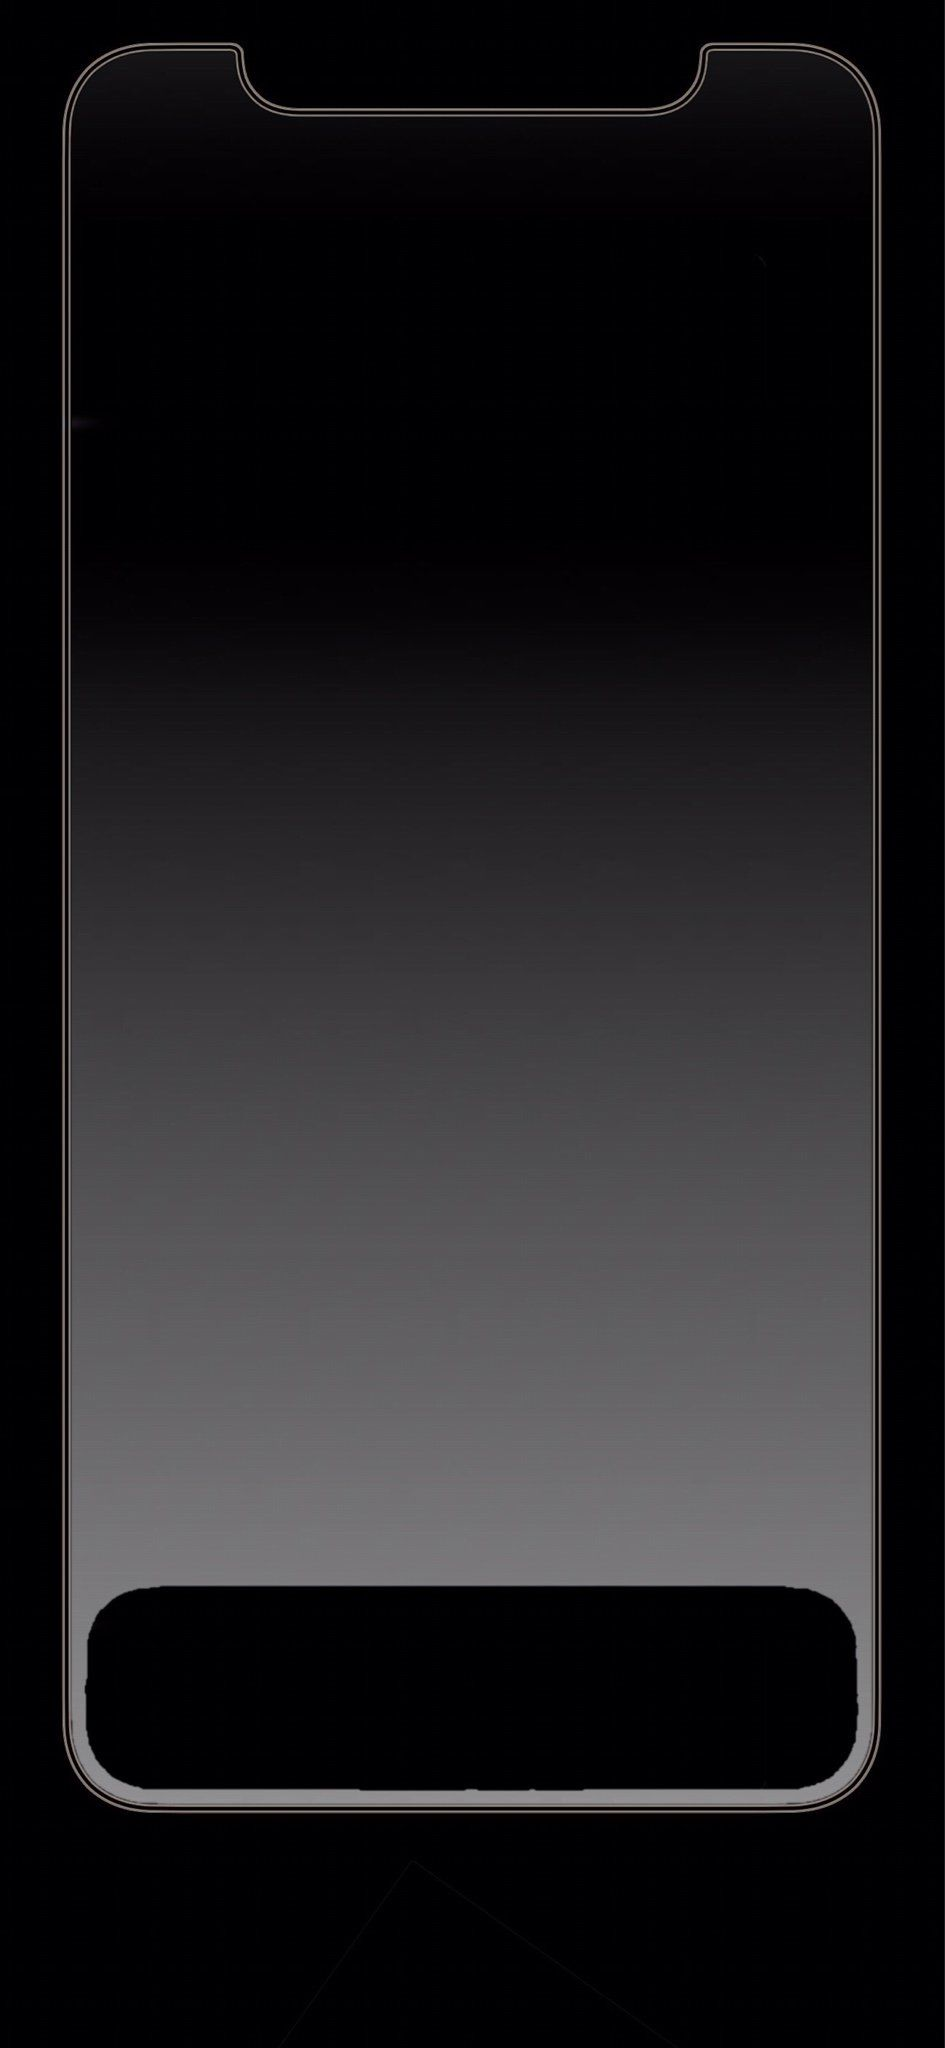 List of Cool Black Background for iPhone 11 Pro Max 2019